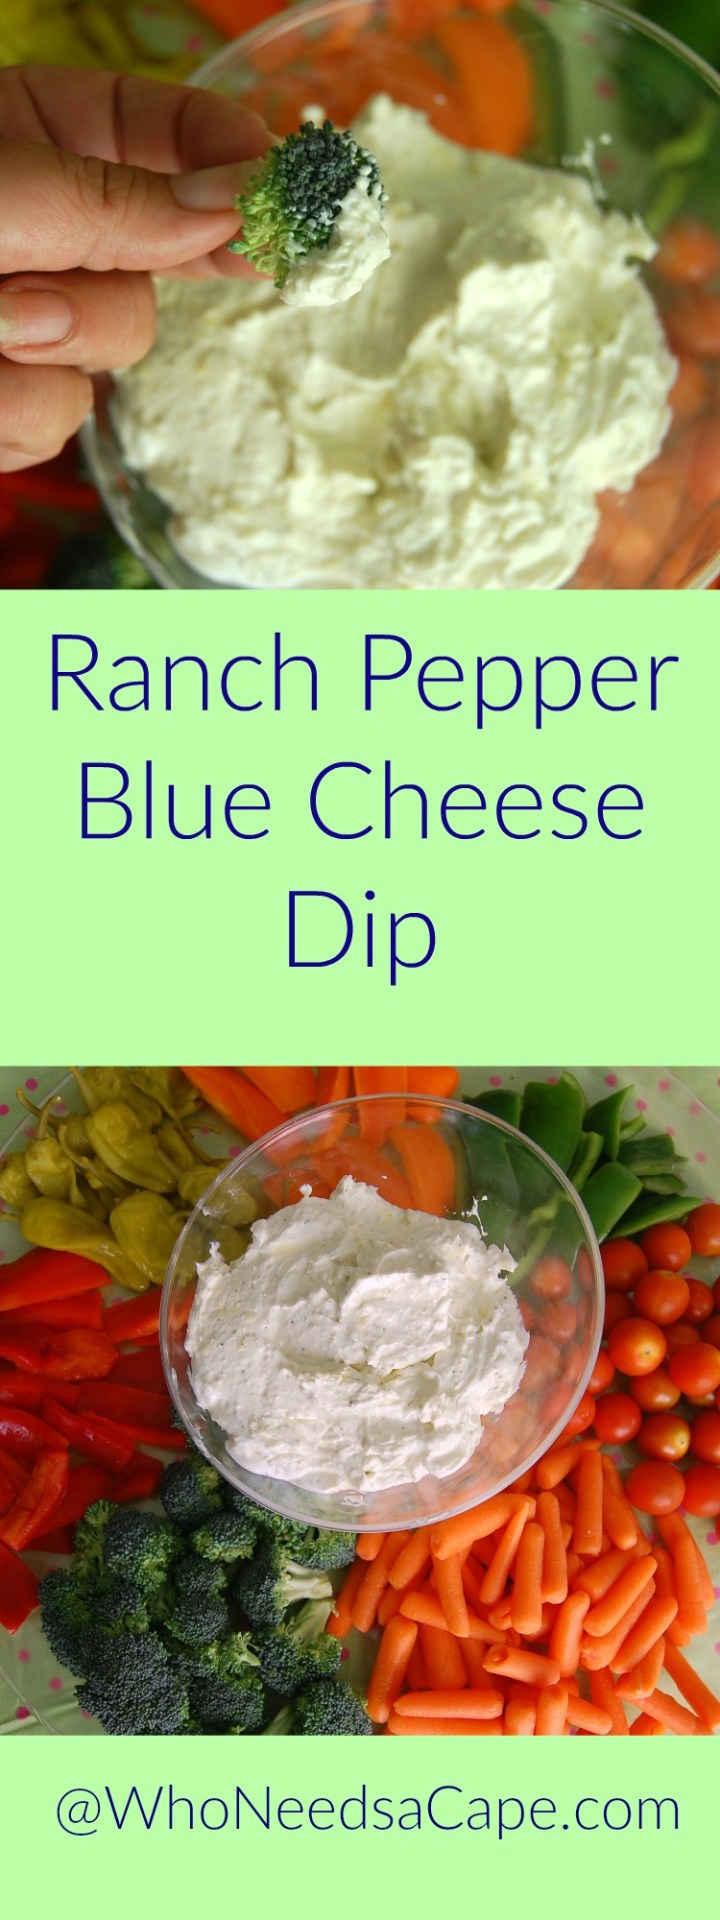 Ranch Pepper Blue Cheese Dip puts all other dips to shame. Use it for any veggie and even on a cracker - great and easy!